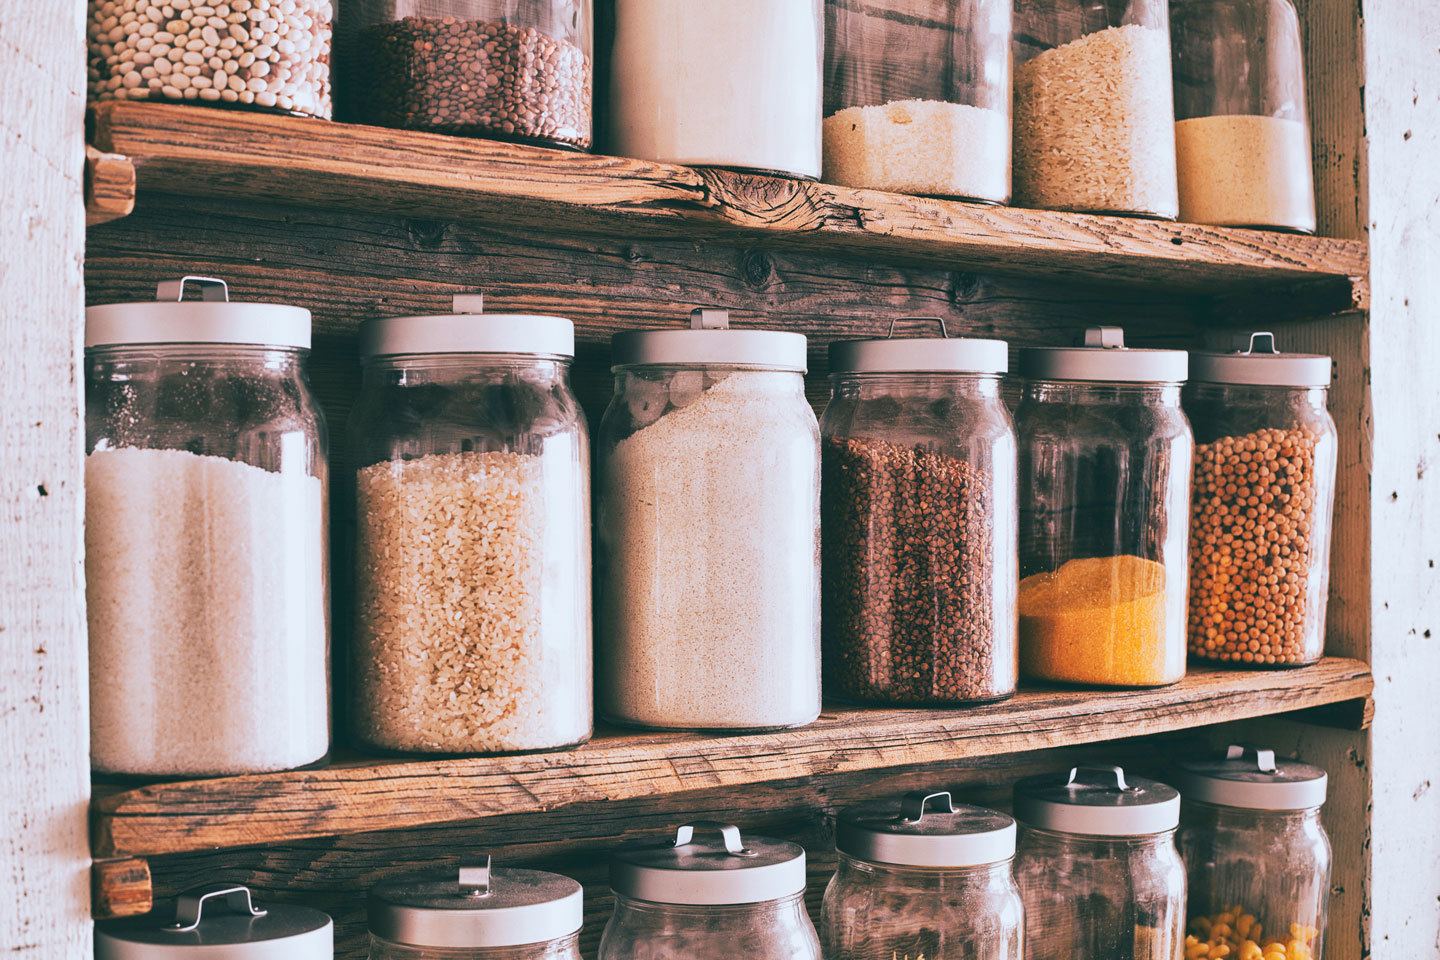 shelves with jars of dry ingredients and spices